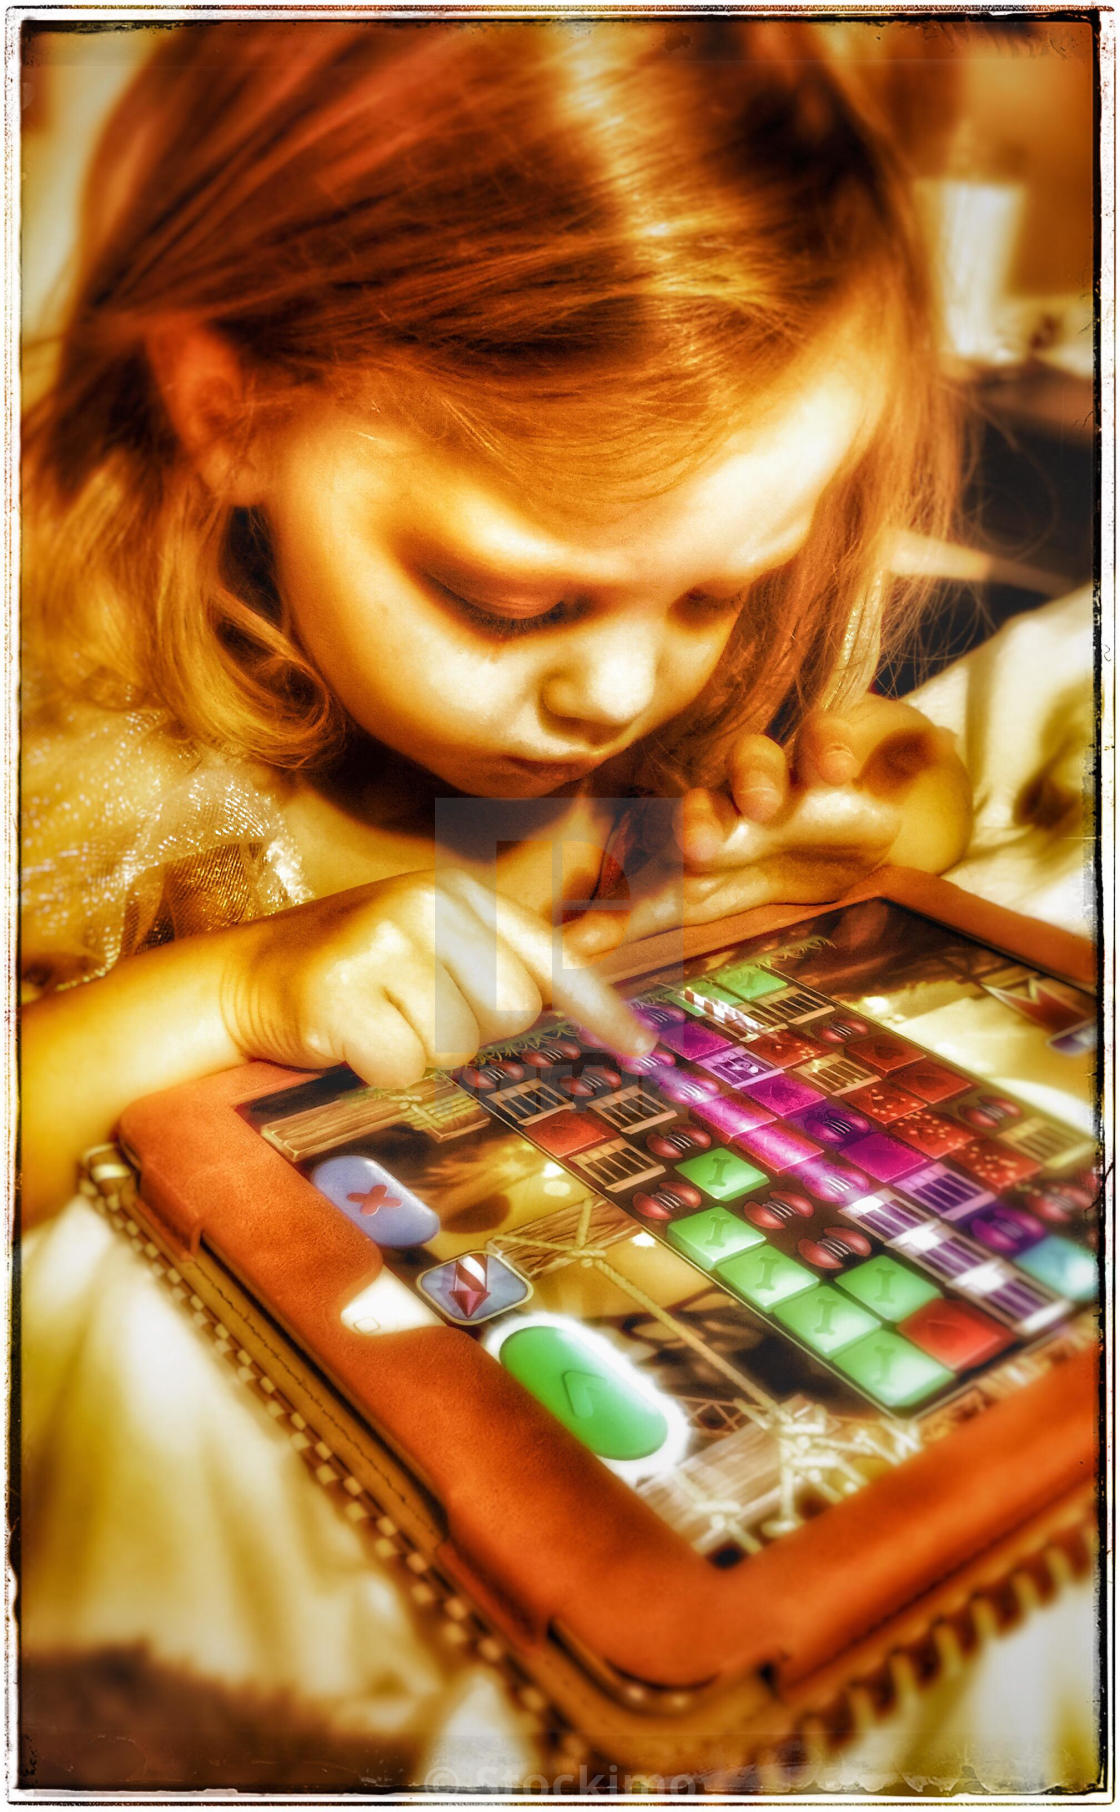 Little girl playing pet rescue saga on an iPad - License